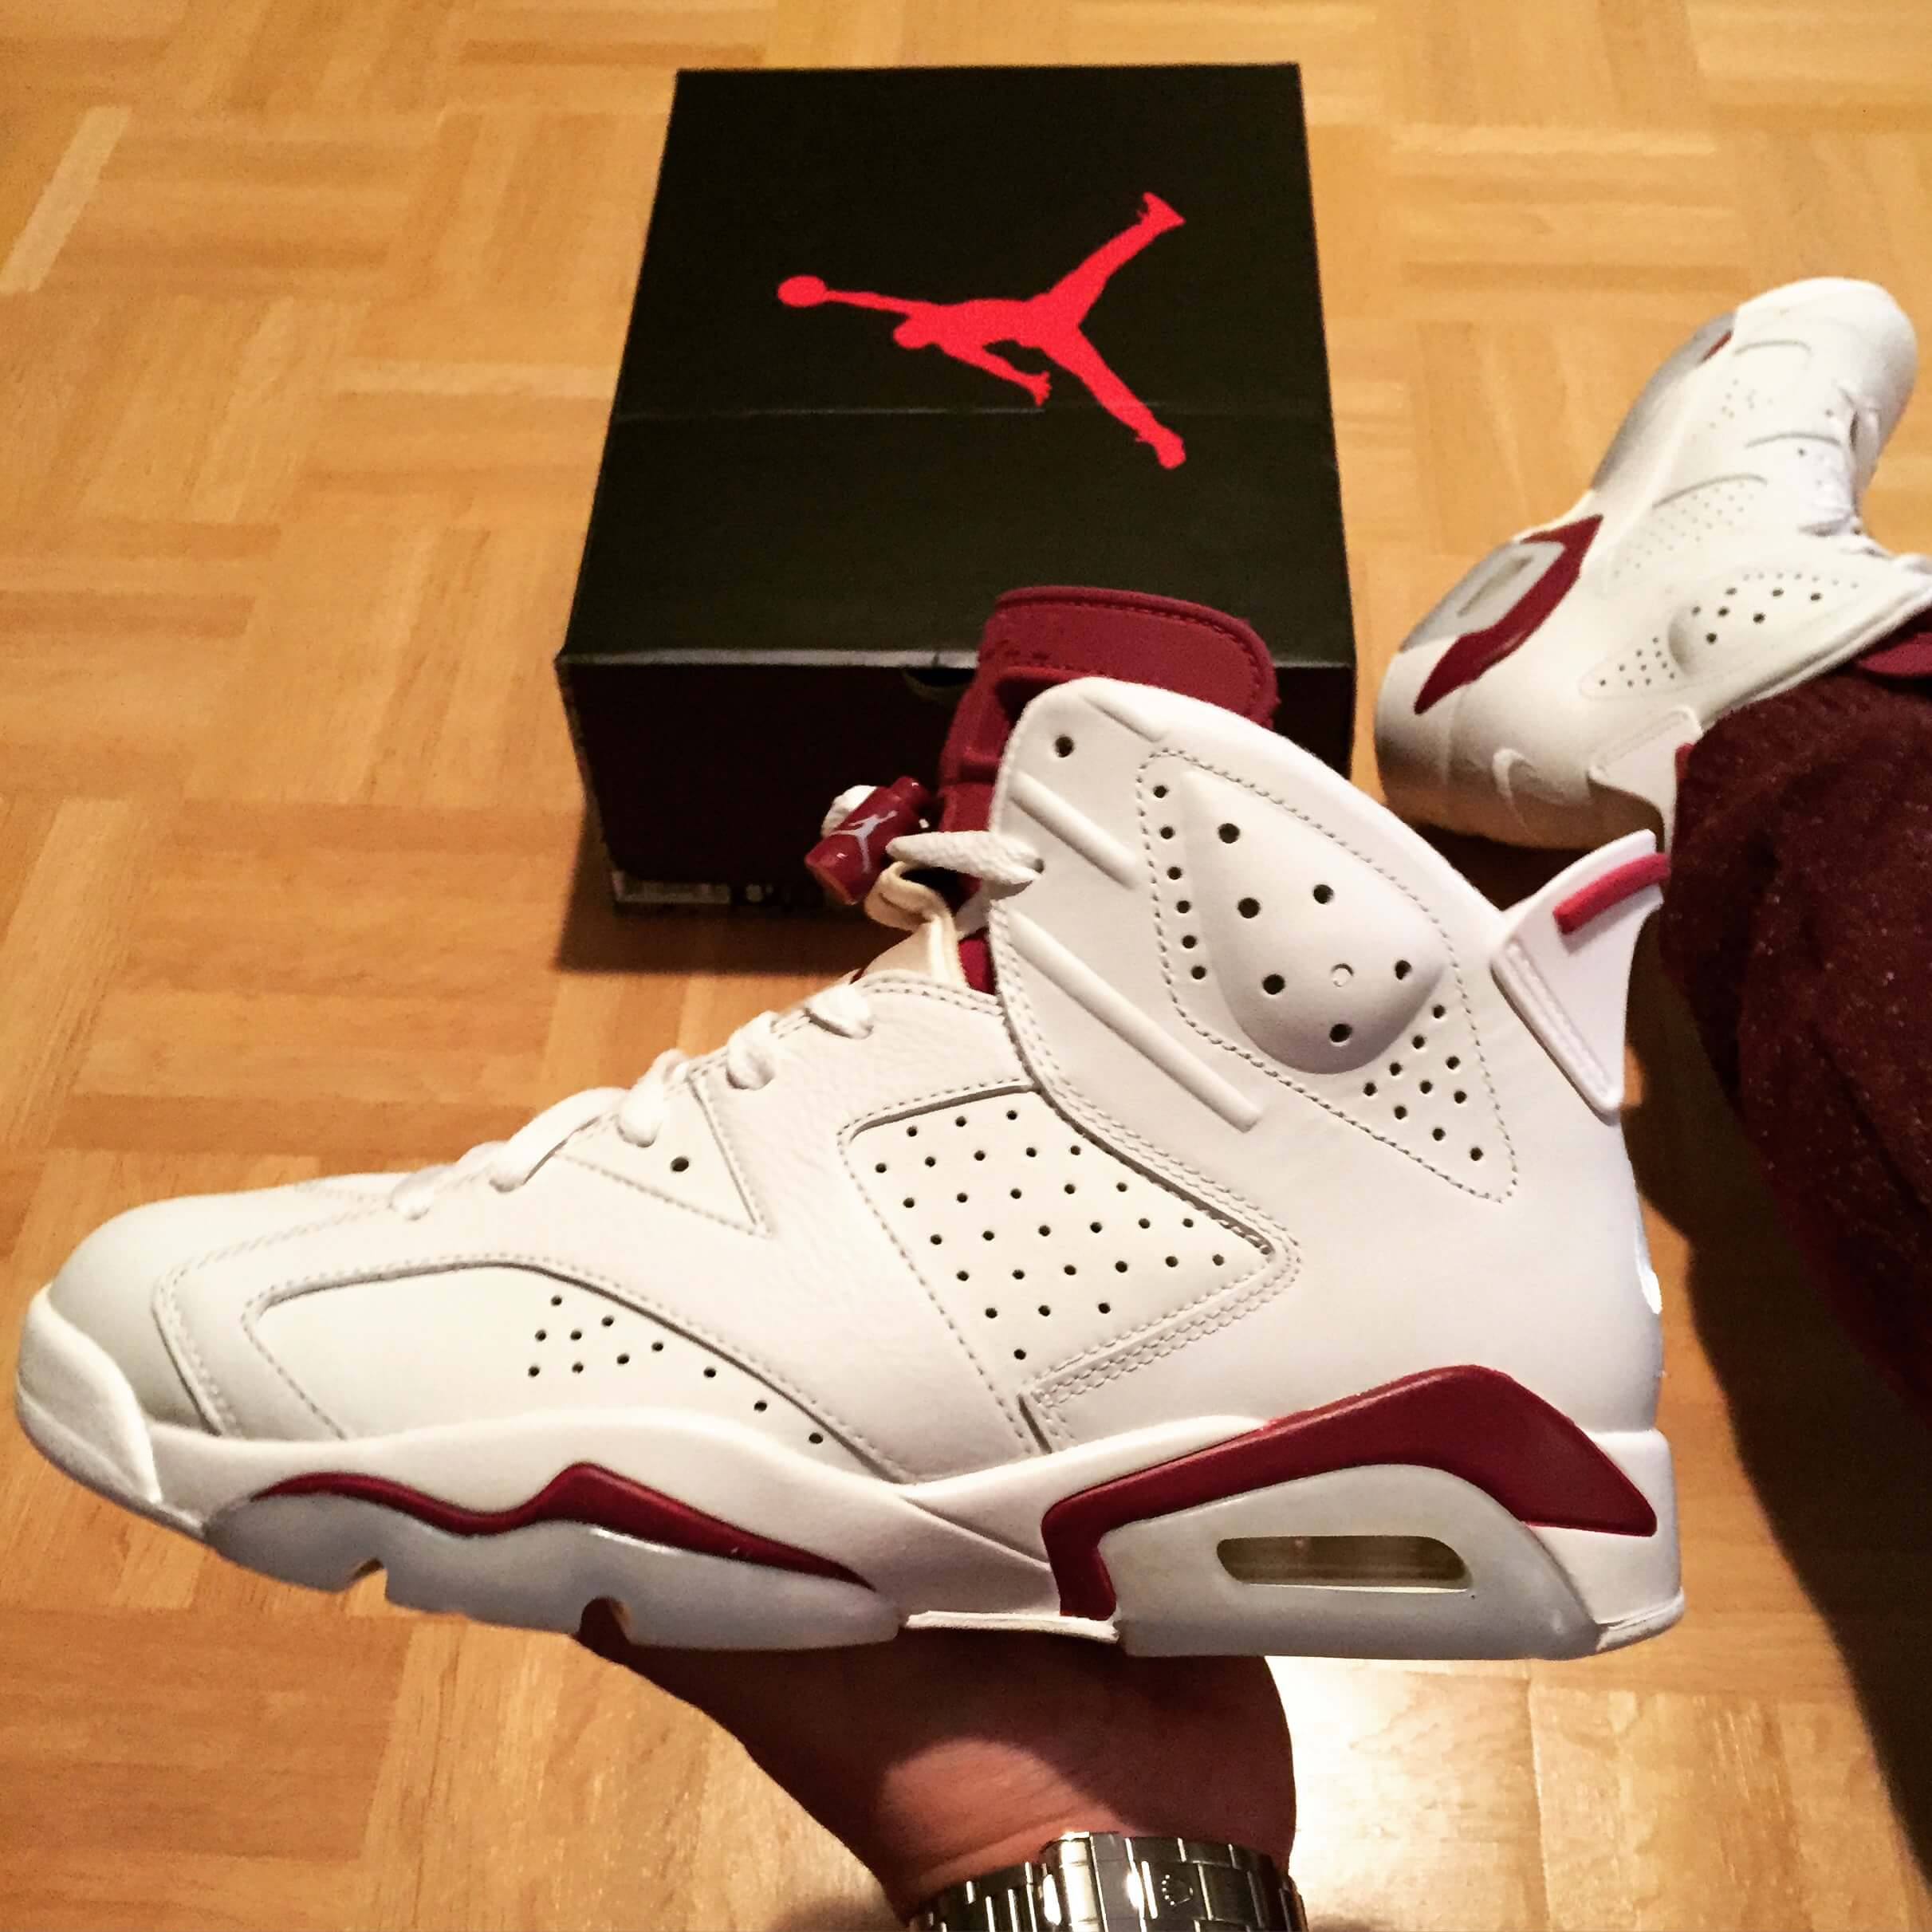 Air-Jordan-6-Maroon-Top-View-Benstah-Onfeet